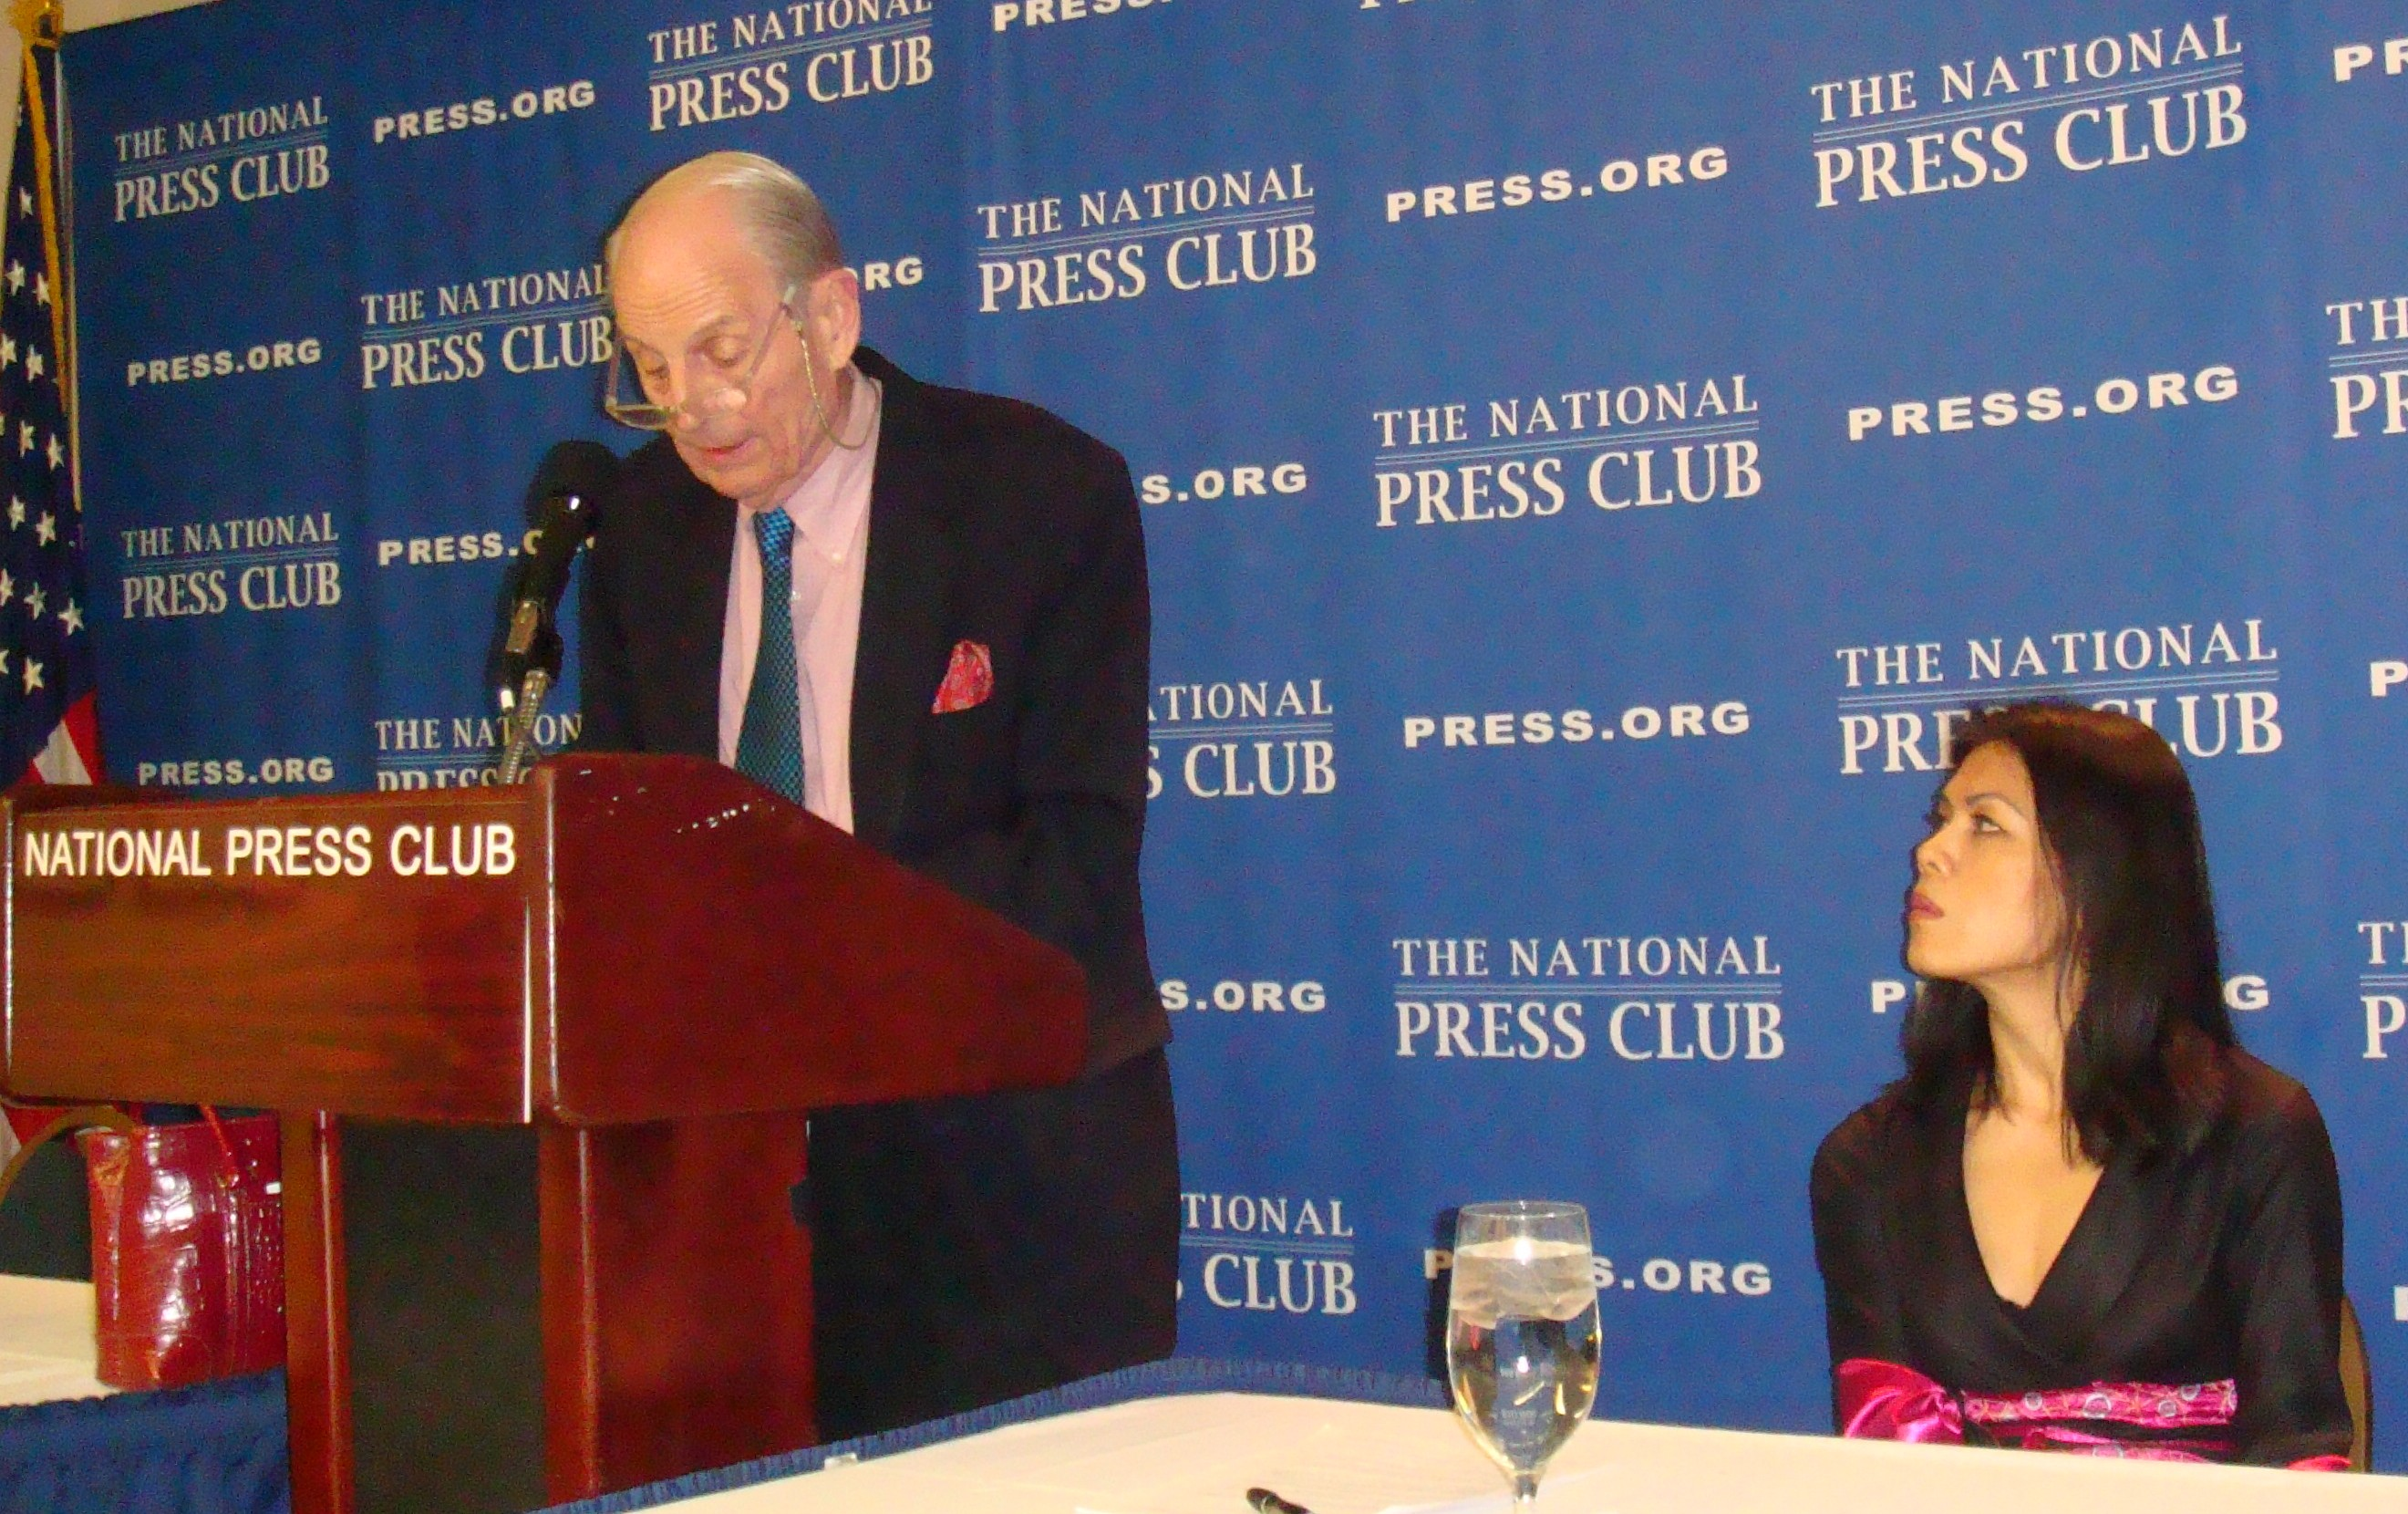 Peter Hickman introducing Theary Seng at the Newsmaker program of the National Press Club, March 2010